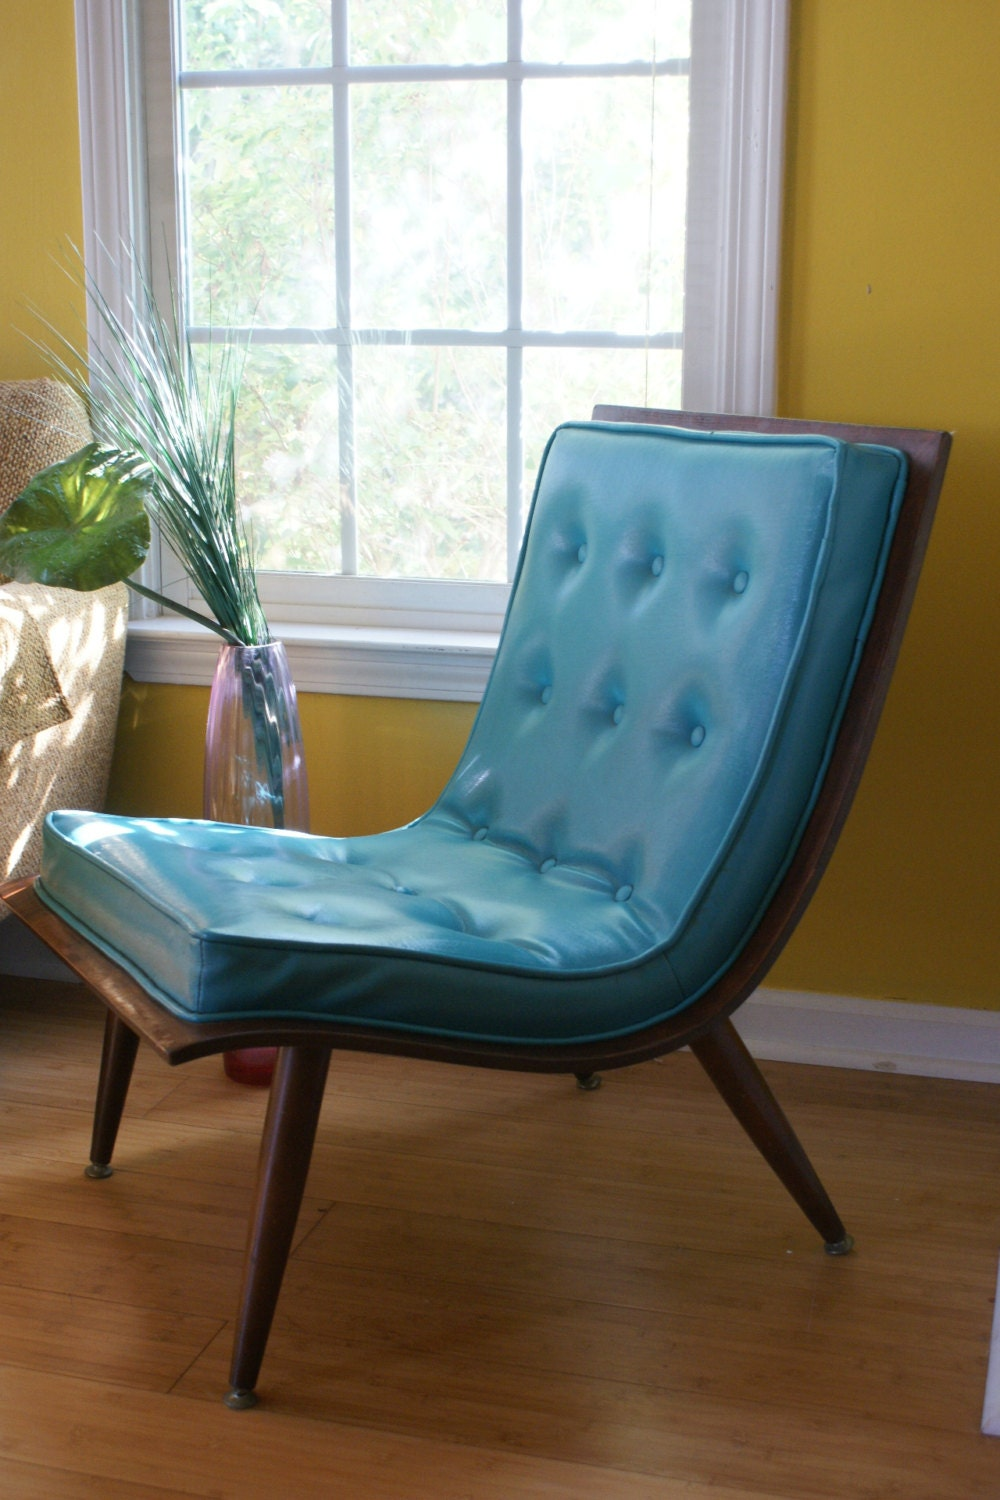 reduced mid century chair teal blue carter bro scoop chair. Black Bedroom Furniture Sets. Home Design Ideas